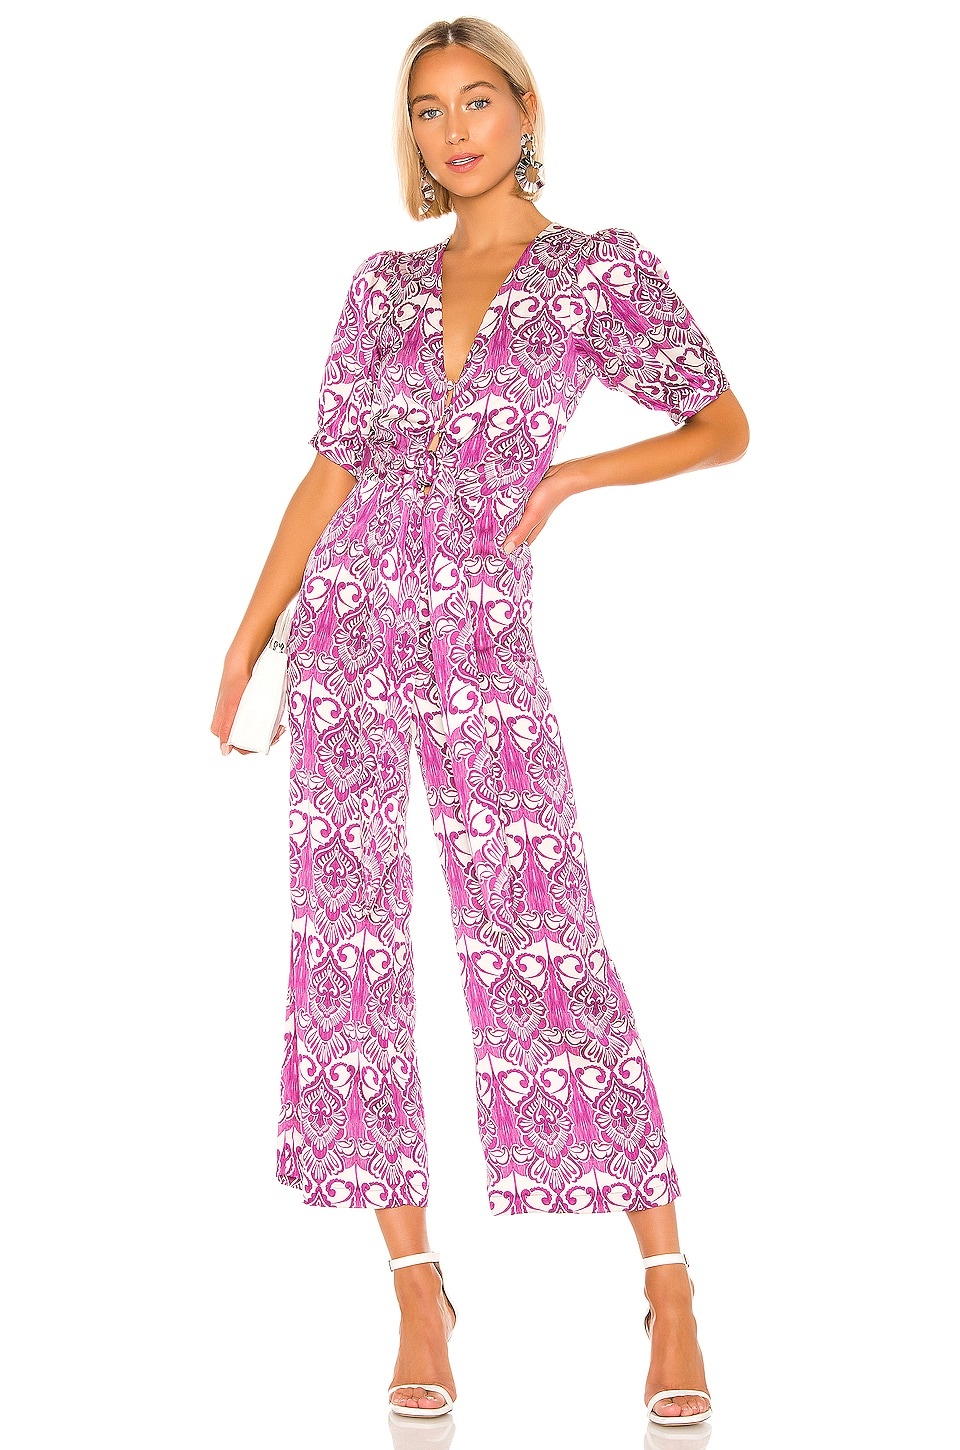 Alexis Mavis Jumpsuit in Mulberry Palm